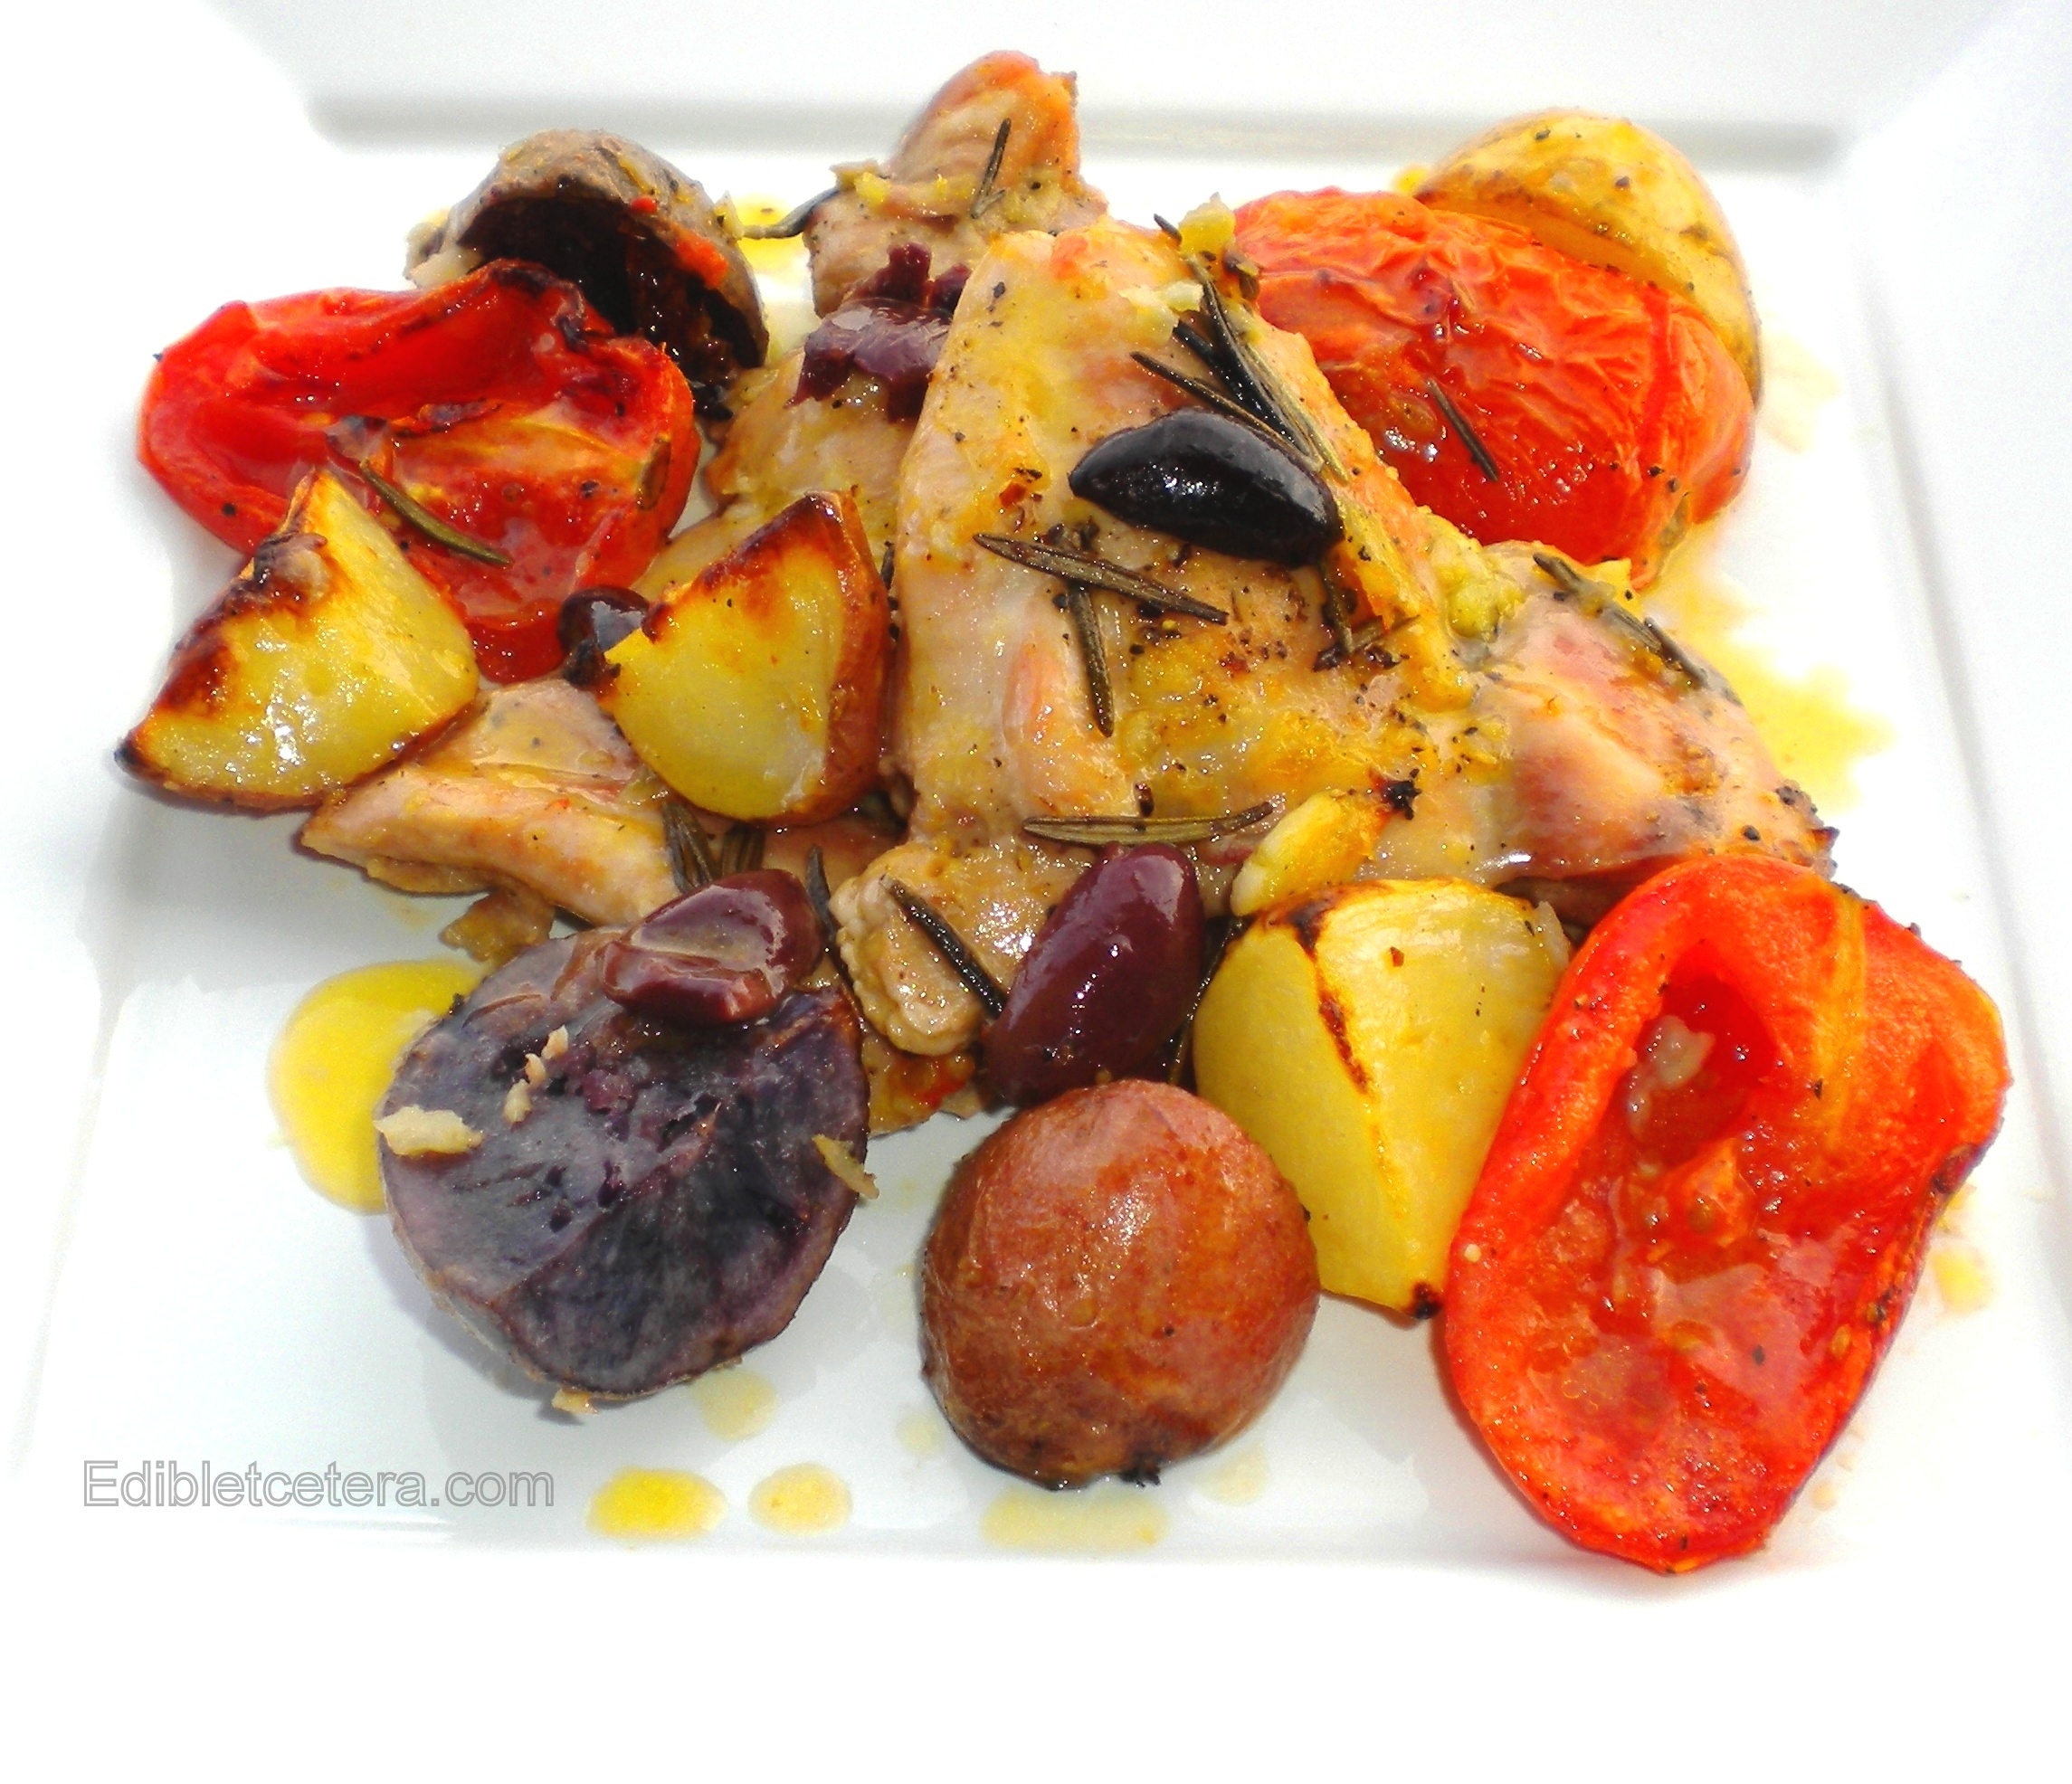 Chicken roasted with potatoes, tomatoes, olives and lemon